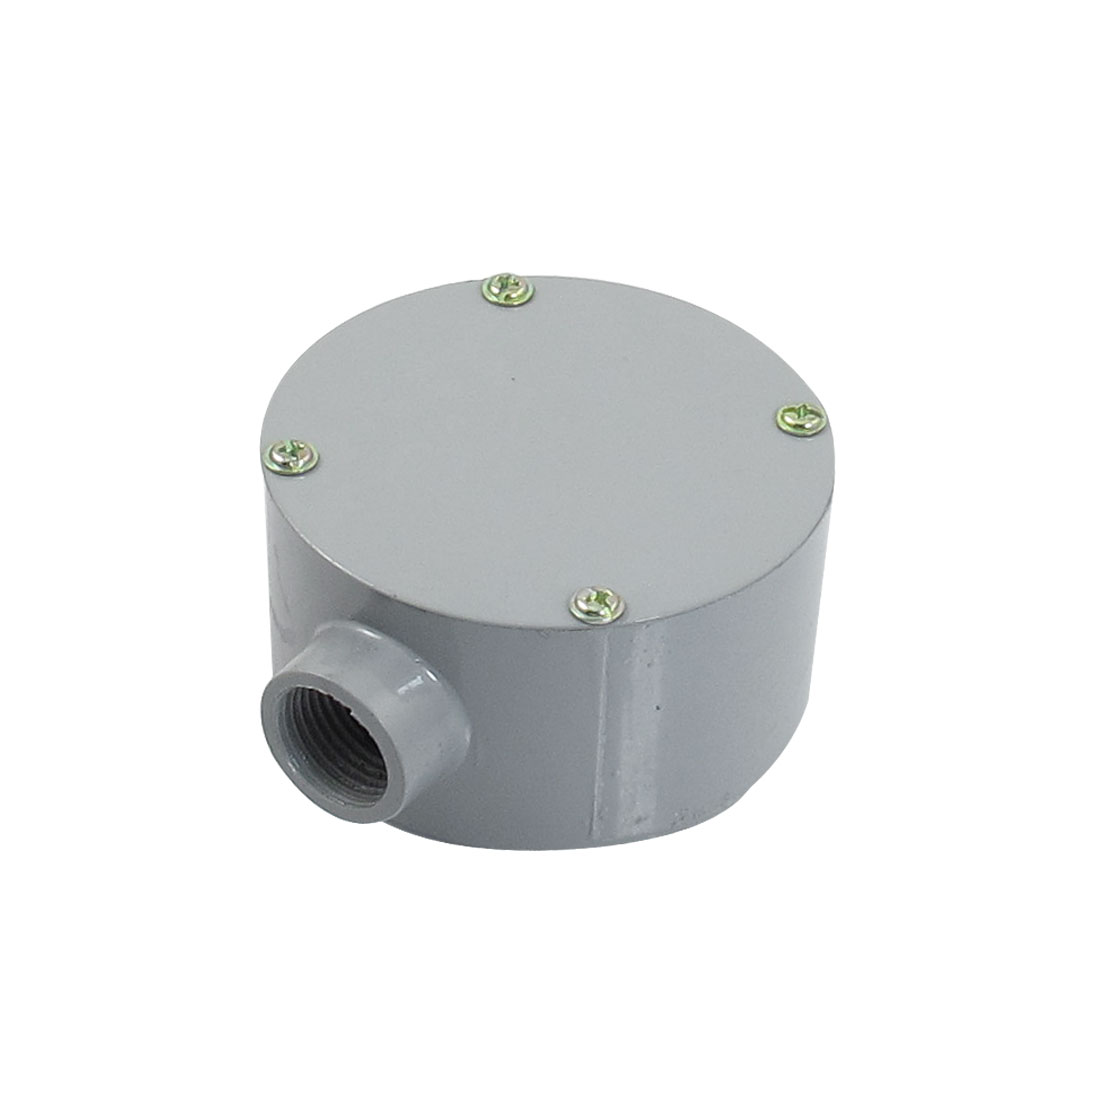 "G1/2"" Dia. One Hole Connecting Metal Round Water-Proof Junction Box"